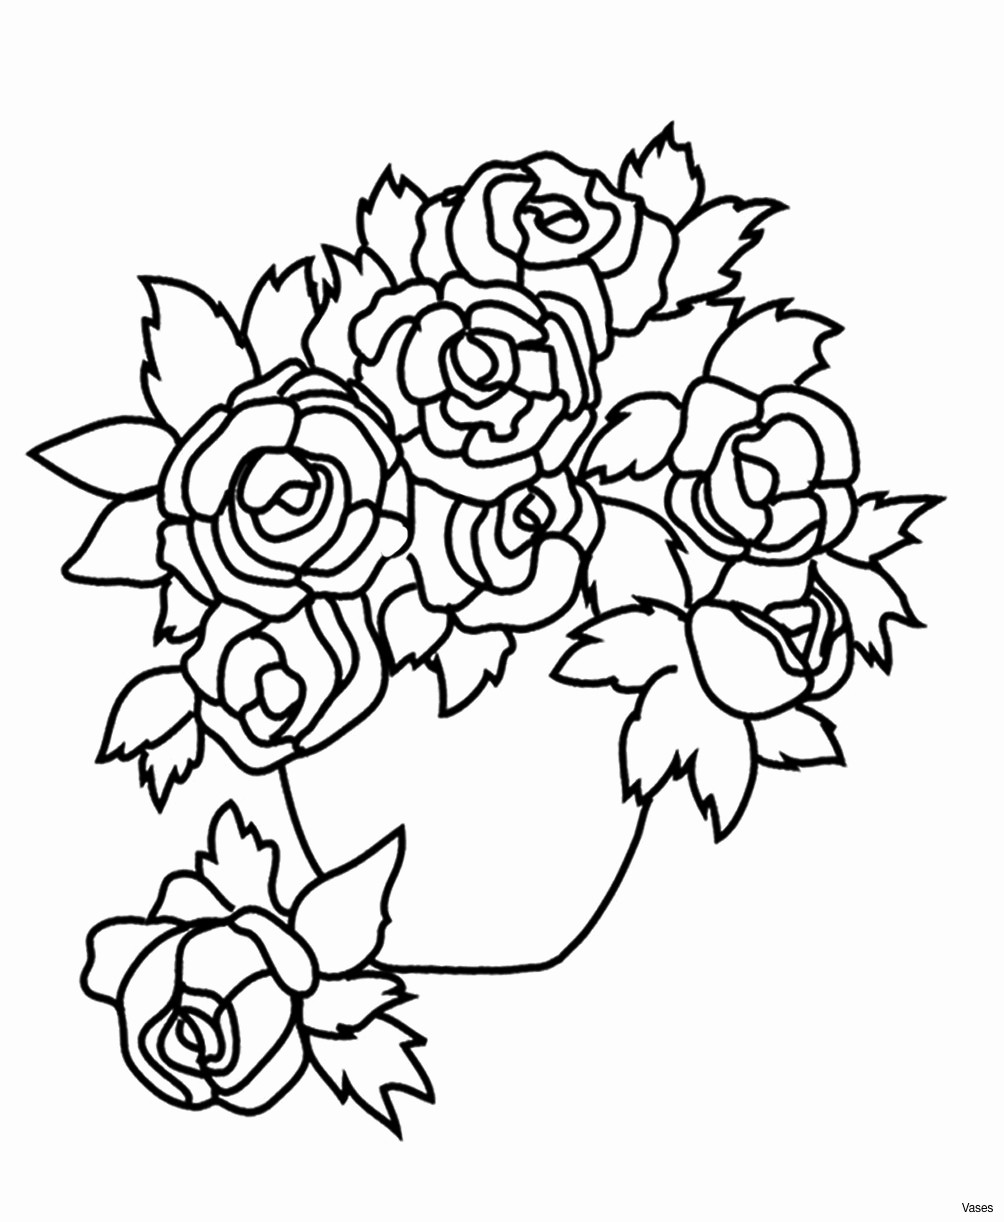 flowers that last long in a vase of parrot coloring pictures fresh cool vases flower vase coloring page pertaining to parrot coloring pictures fresh cool vases flower vase coloring page pages flowers in a top i